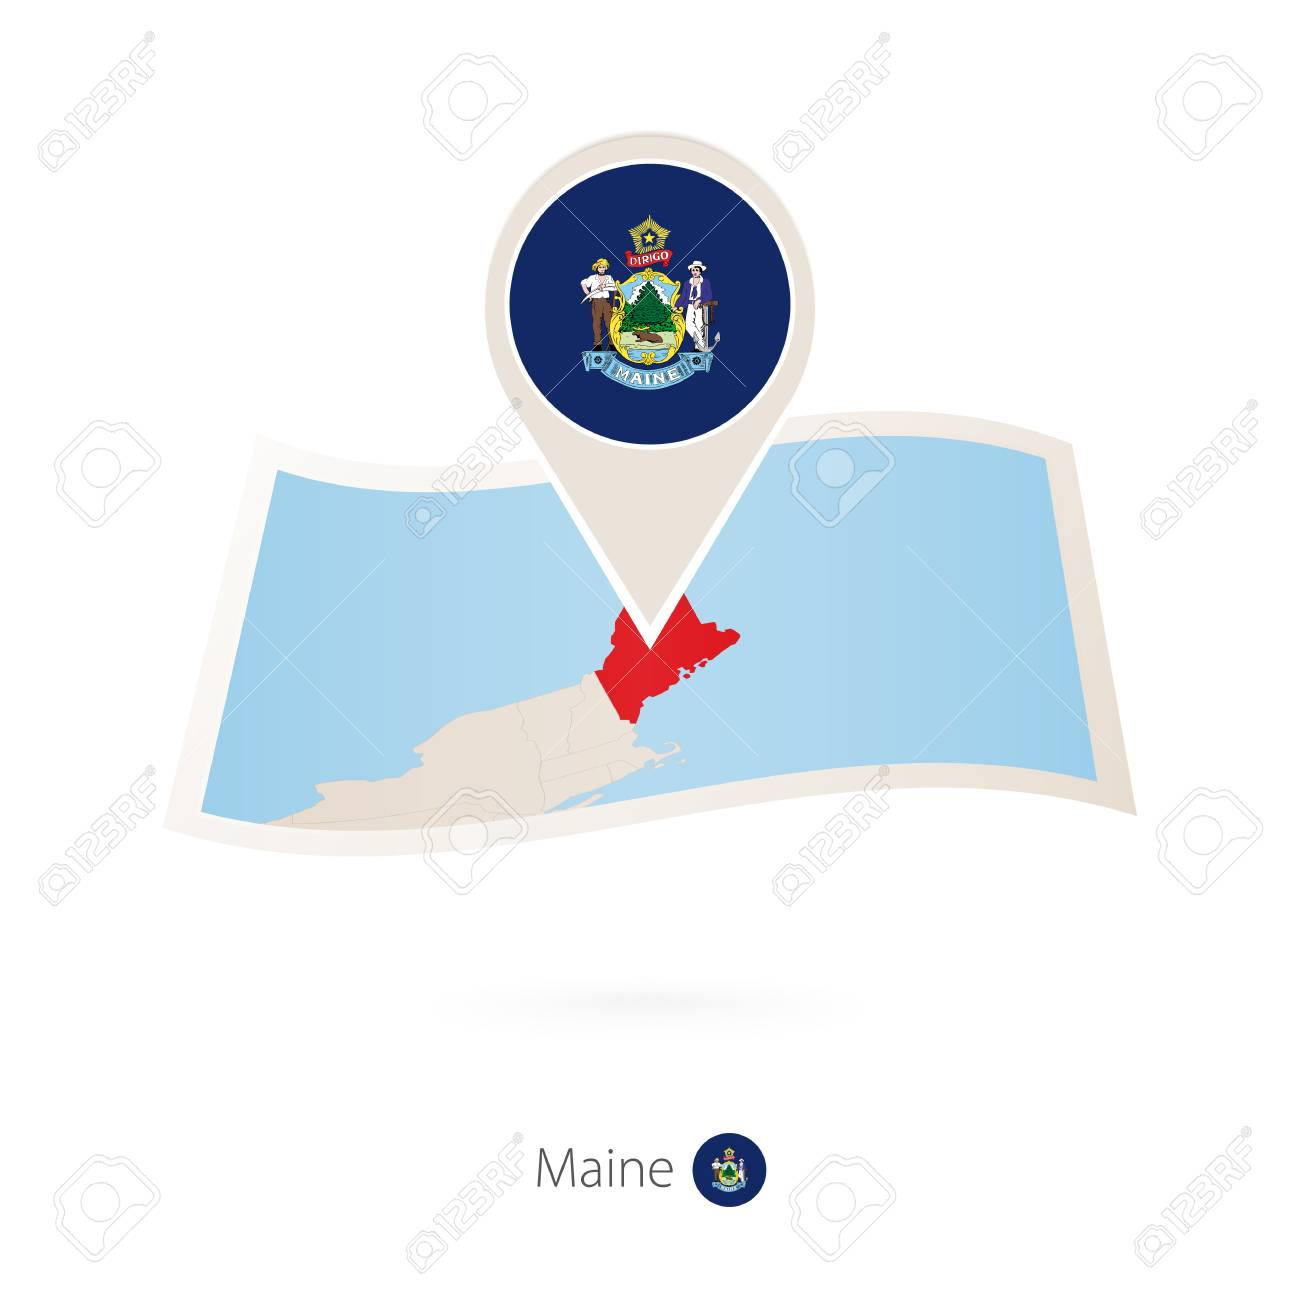 Folded paper map of Maine U.S. State with flag pin of Maine... on map of ogunquit maine, earthquake maine, state map maine, walmart maine, united states maine, google maps maine,